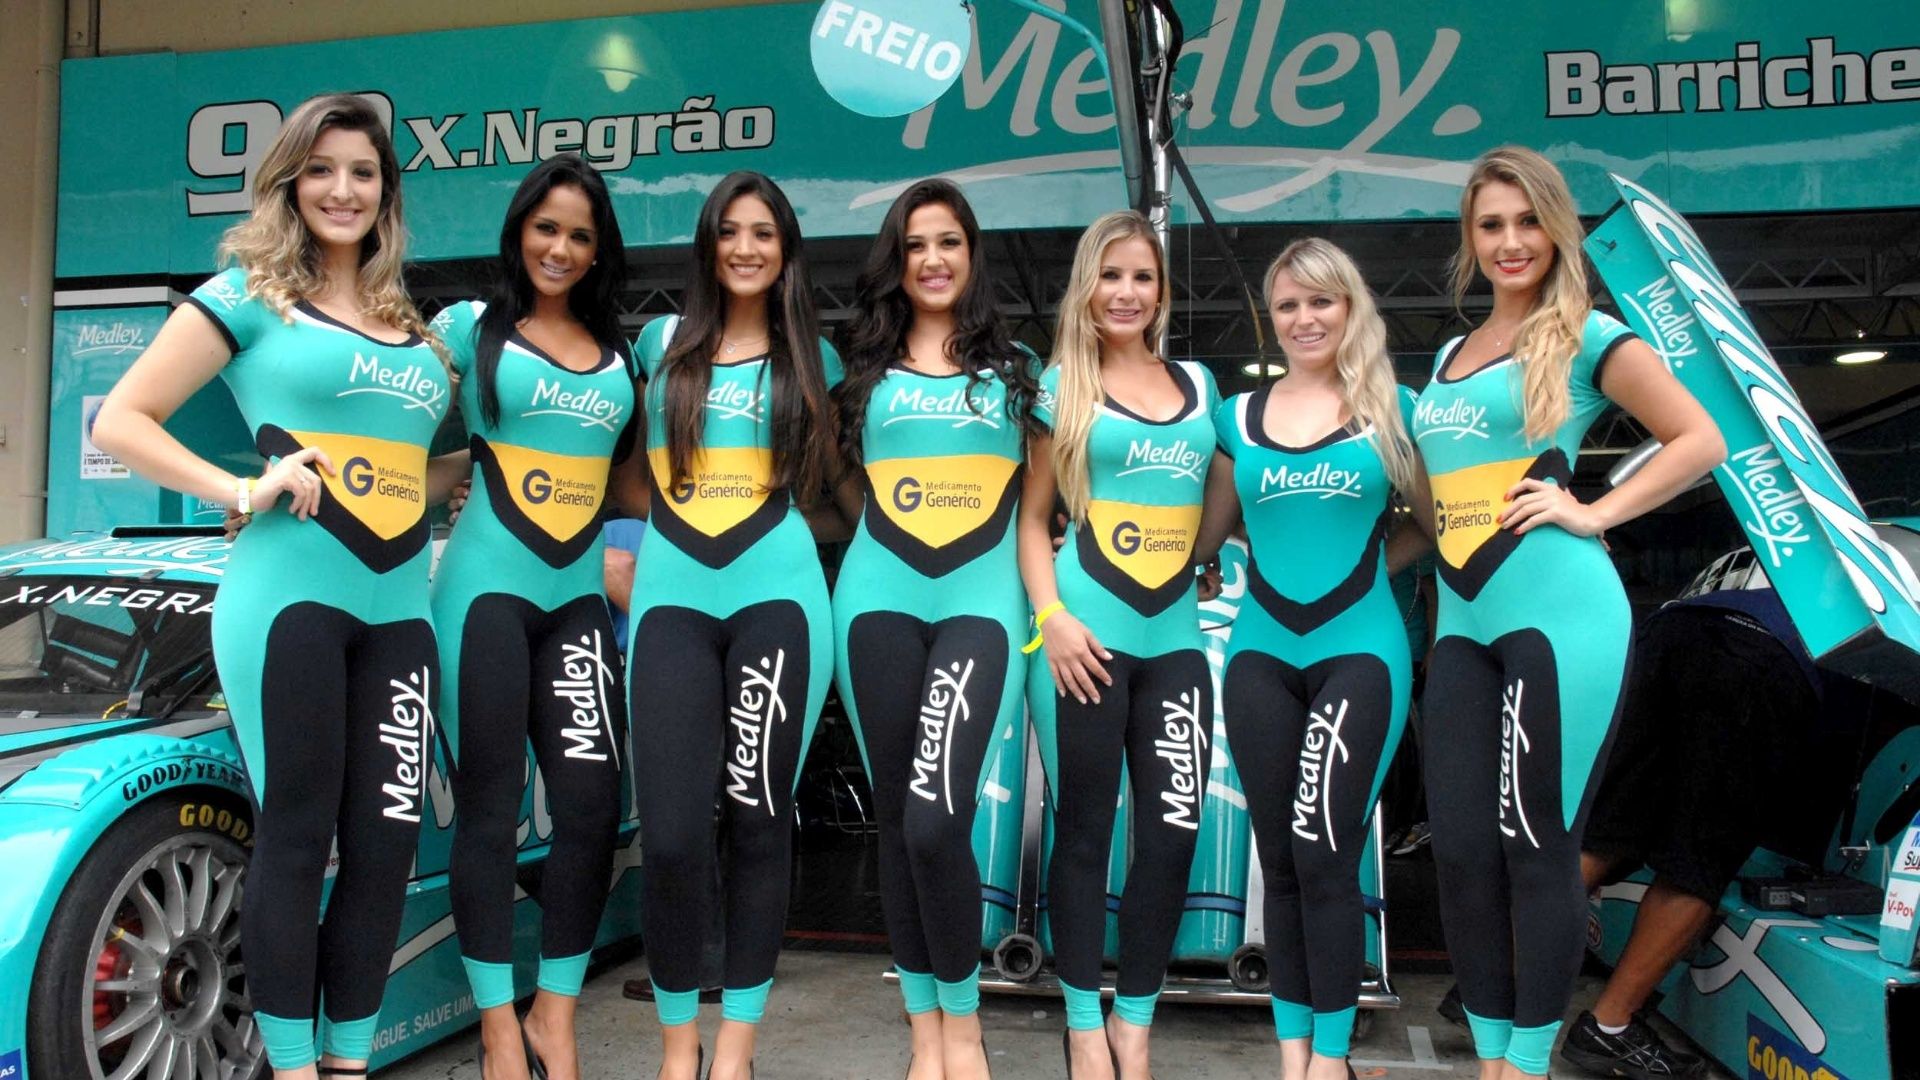 As belas grid girls tambm marcaram presena antes da Corrida do Milho em Interlagos